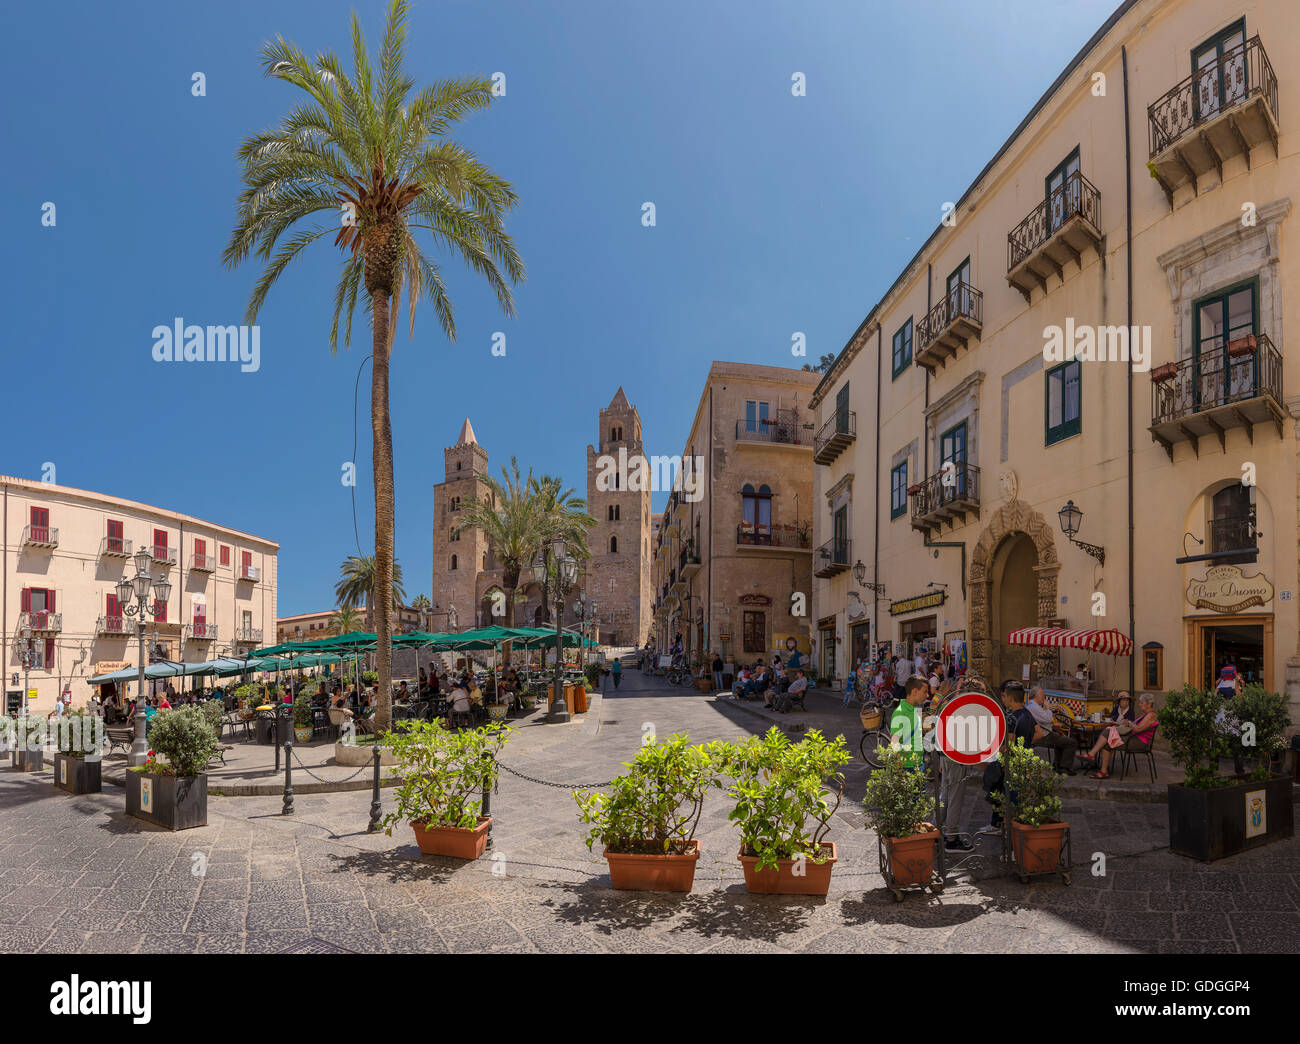 Square with outdoor cafes,sunshades and palm trees,Cefalu cathedral - Stock Image